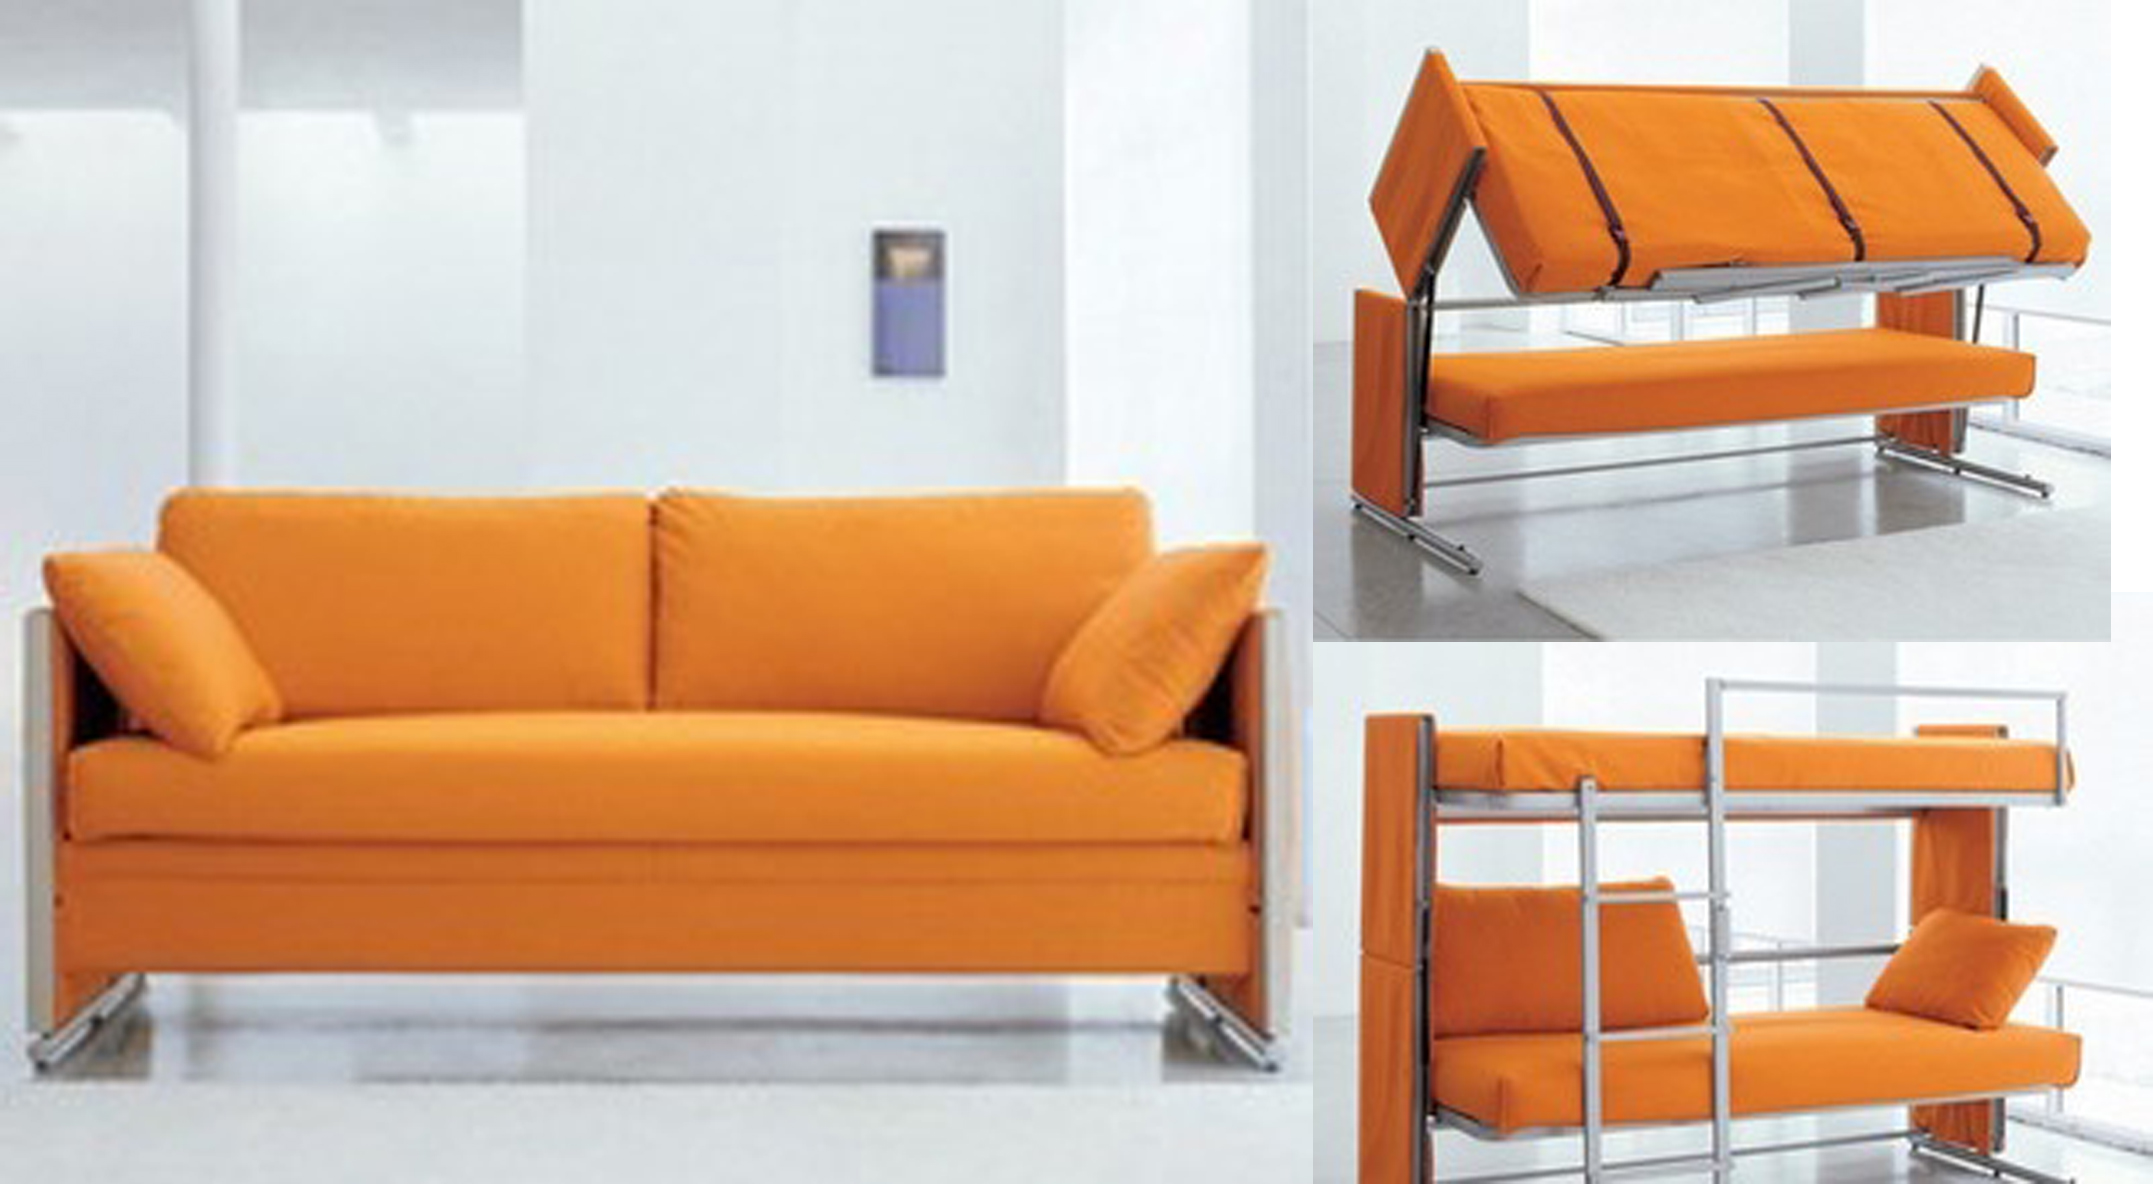 Couch Into Bunk Bed Ideas Kids Room (View 2 of 10)